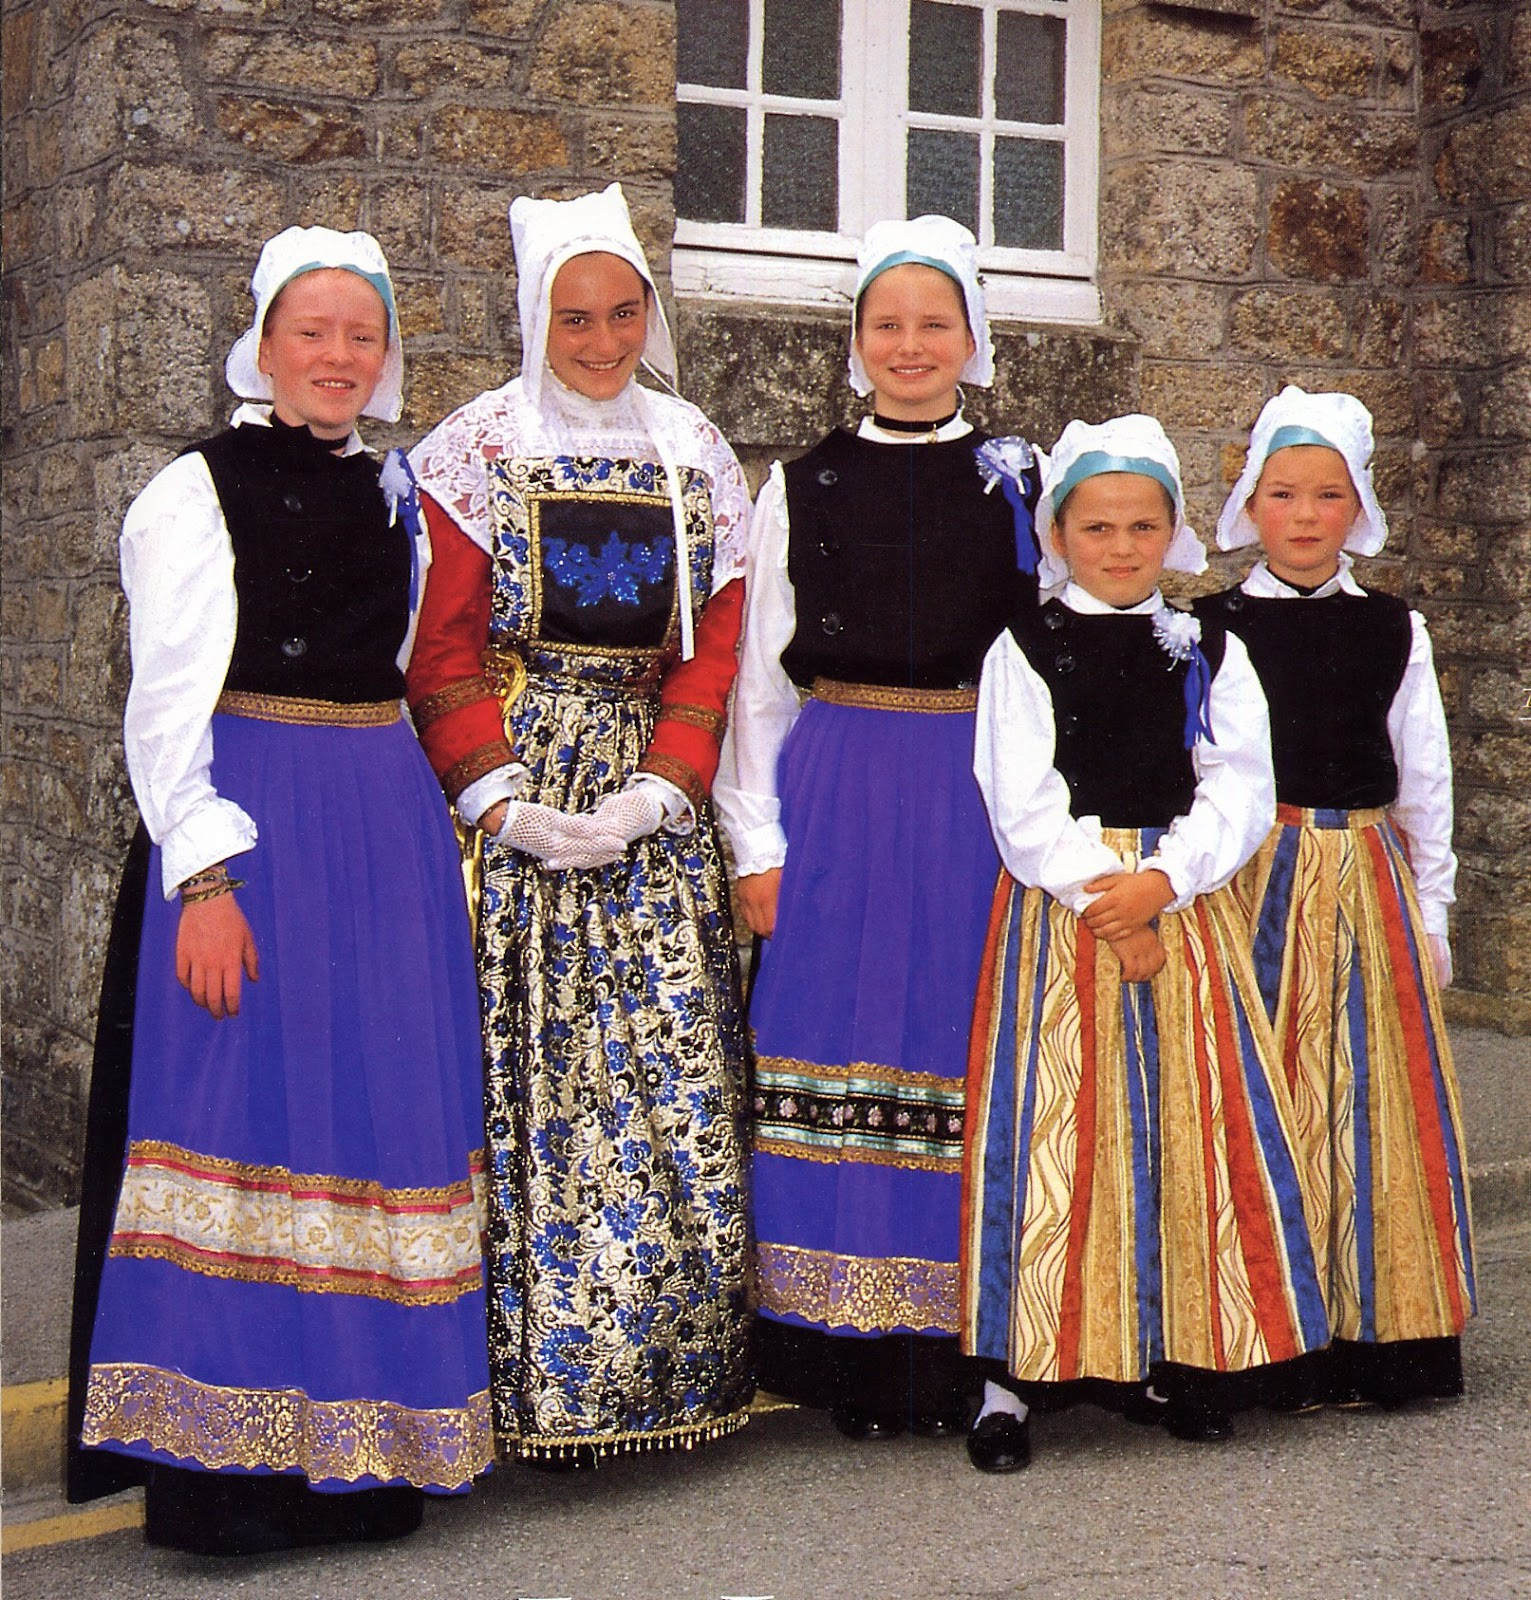 Folkcostume Amp Embroidery Overview Of The Costumes And